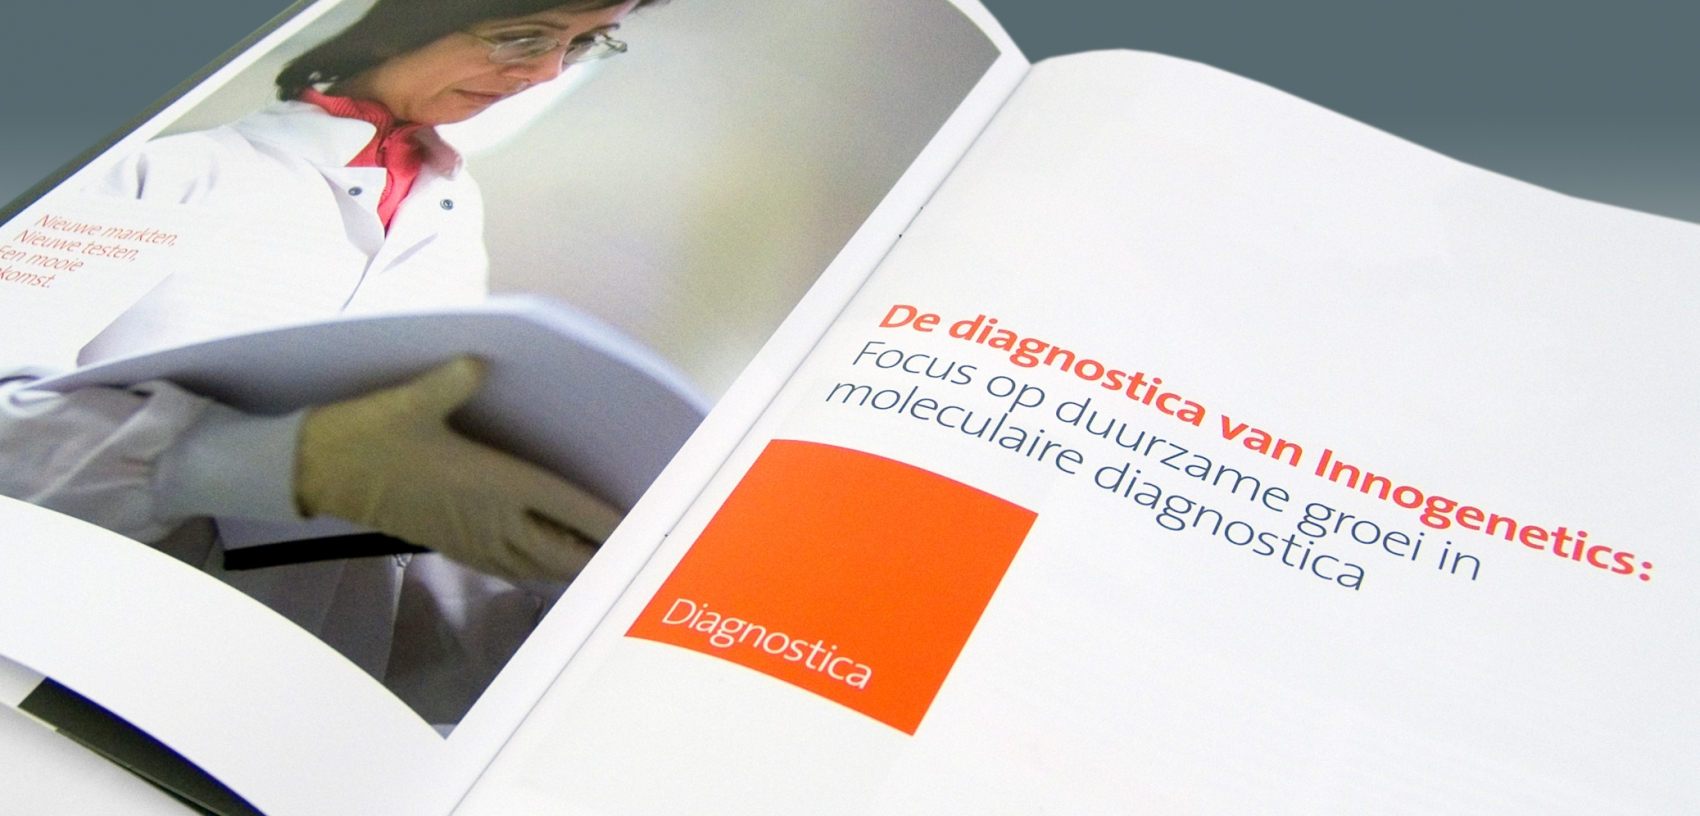 Innogenetics - Annual Report 2006